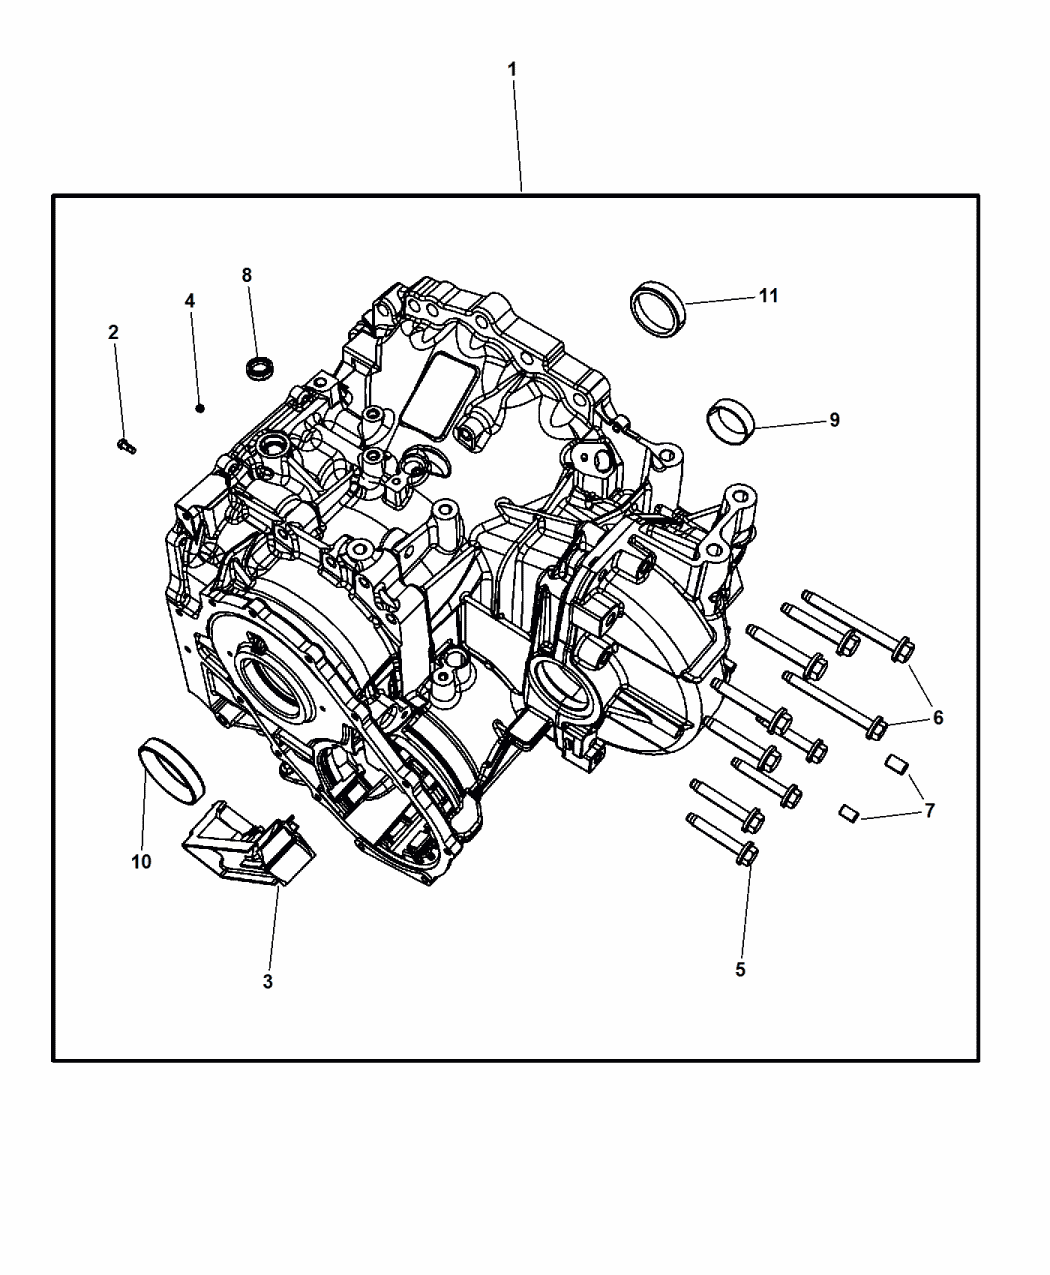 dodge caravan transmission diagram - wiring diagrams all state-what -  state-what.babelweb.it  babelweb.it